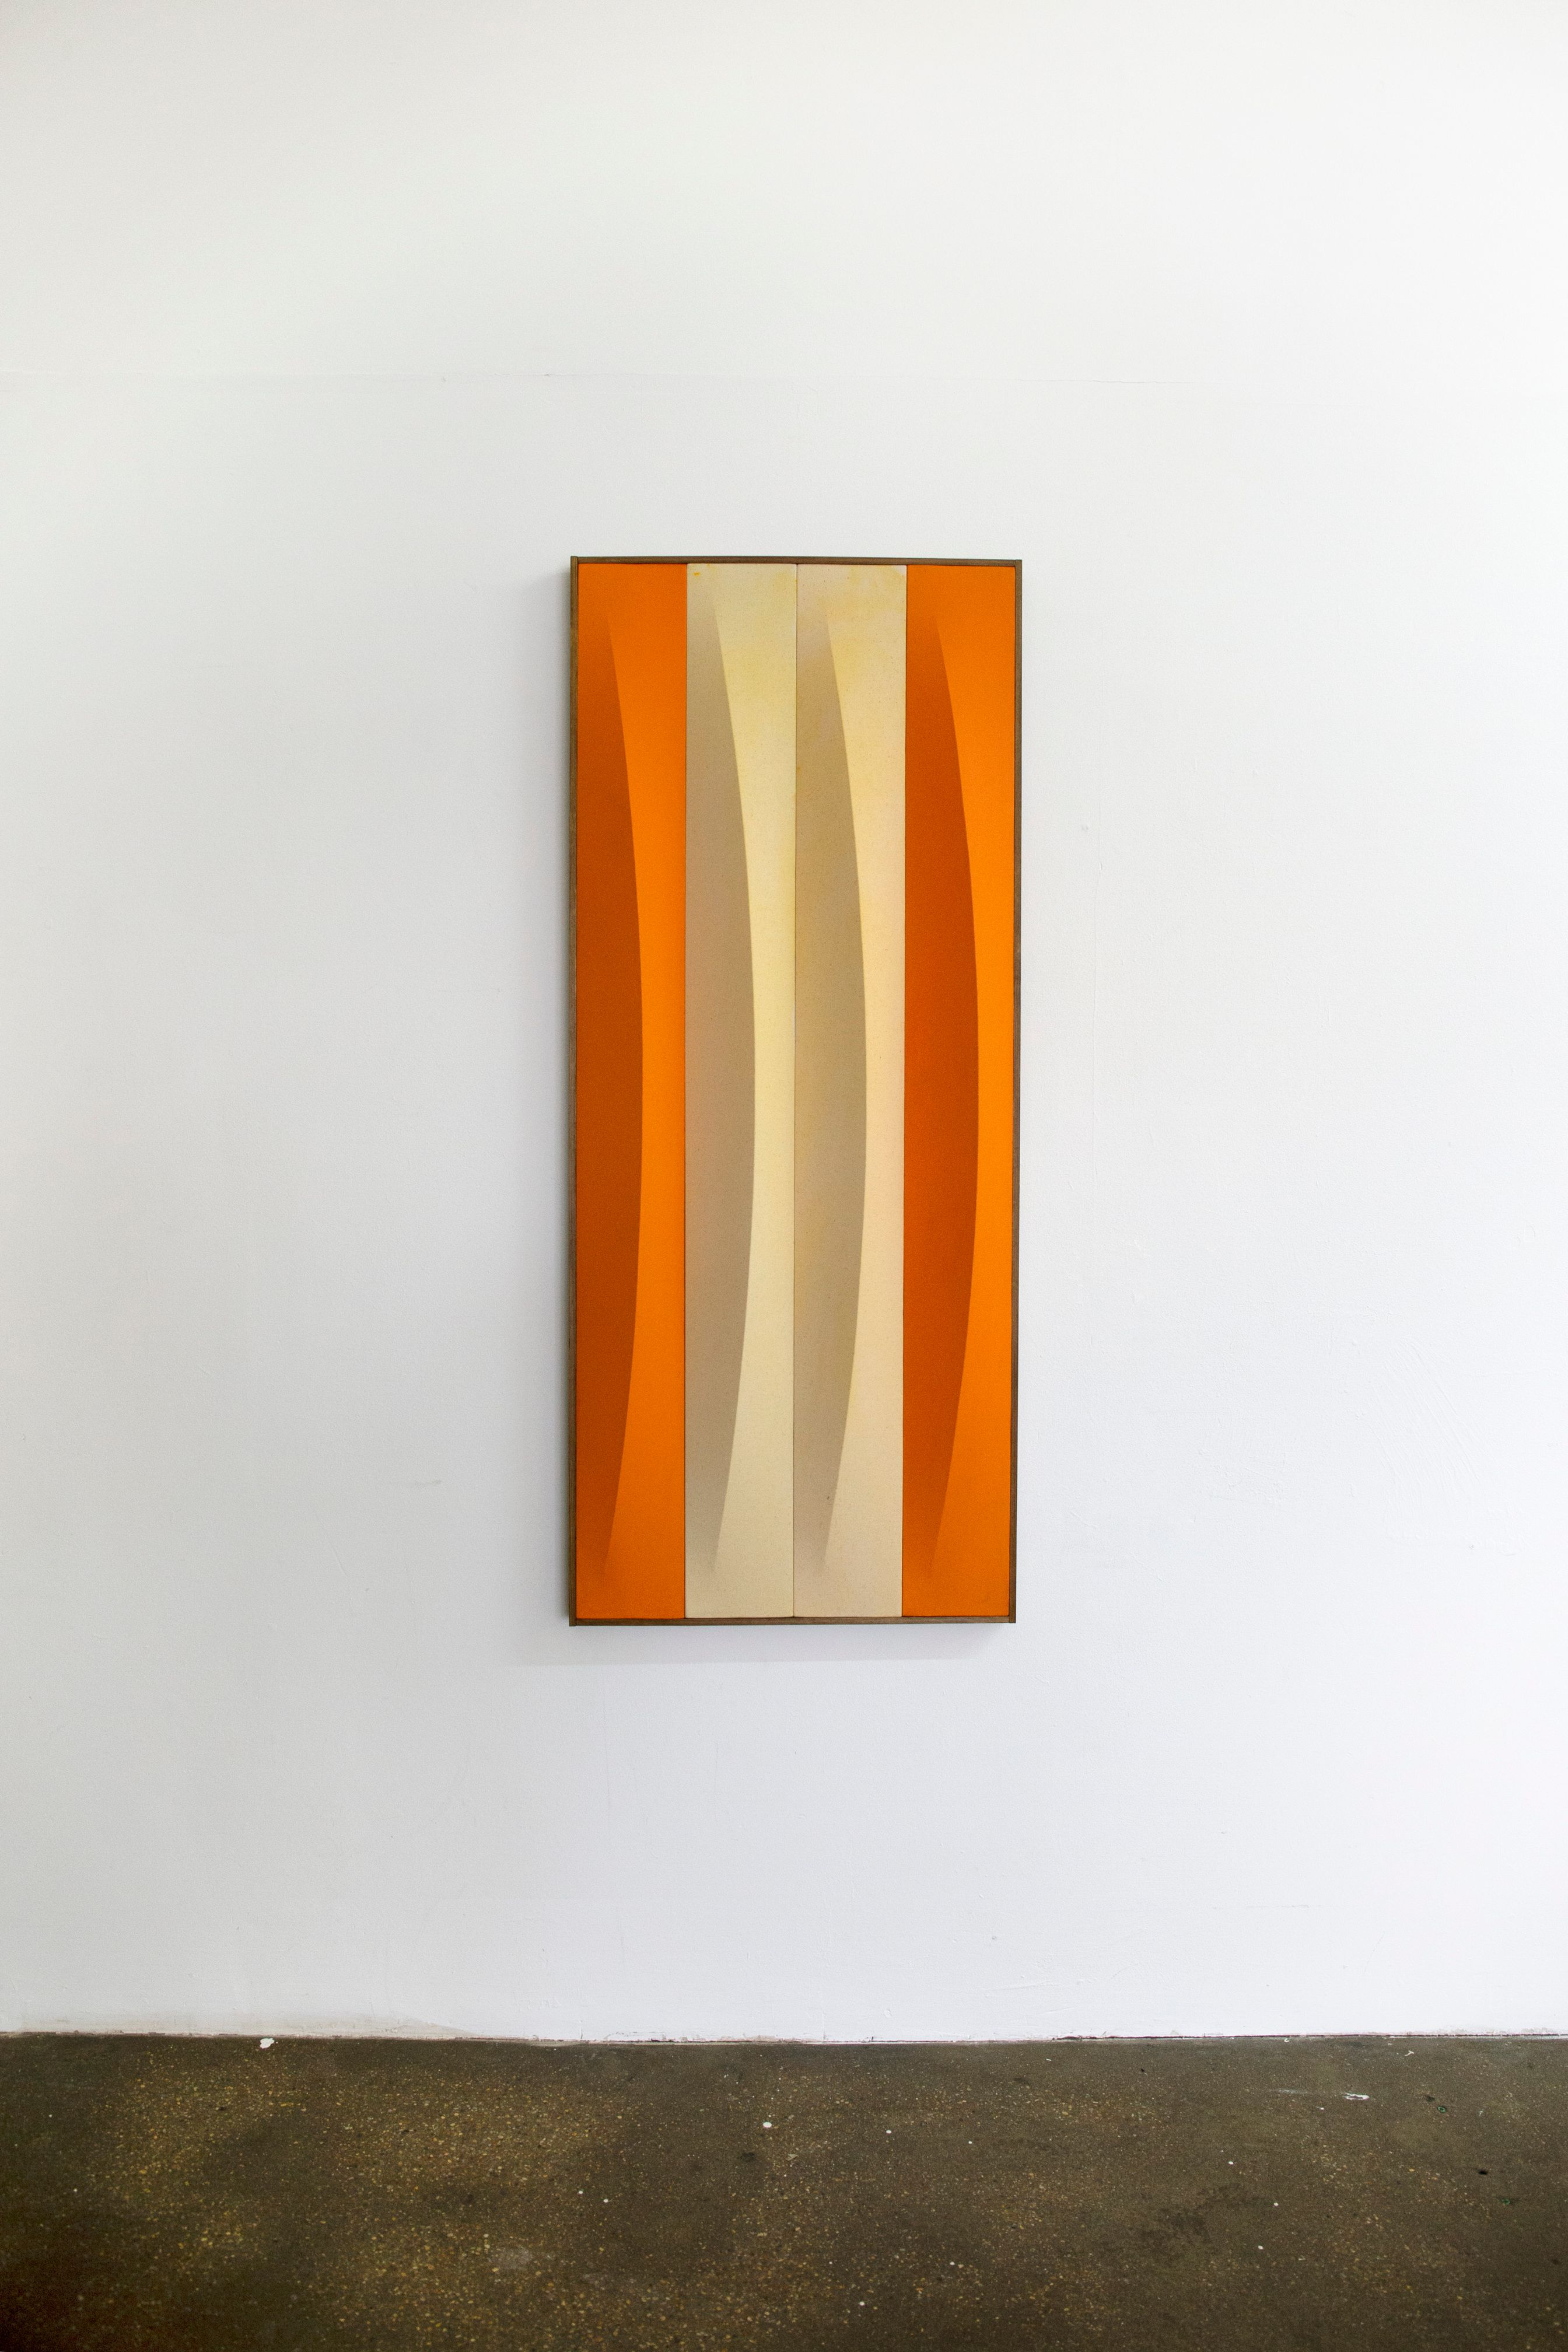 Browns East | Future. Seduction. Icons - Lot 13, Charlie Oscar Patterson, No. 1-9 Orange and Raw